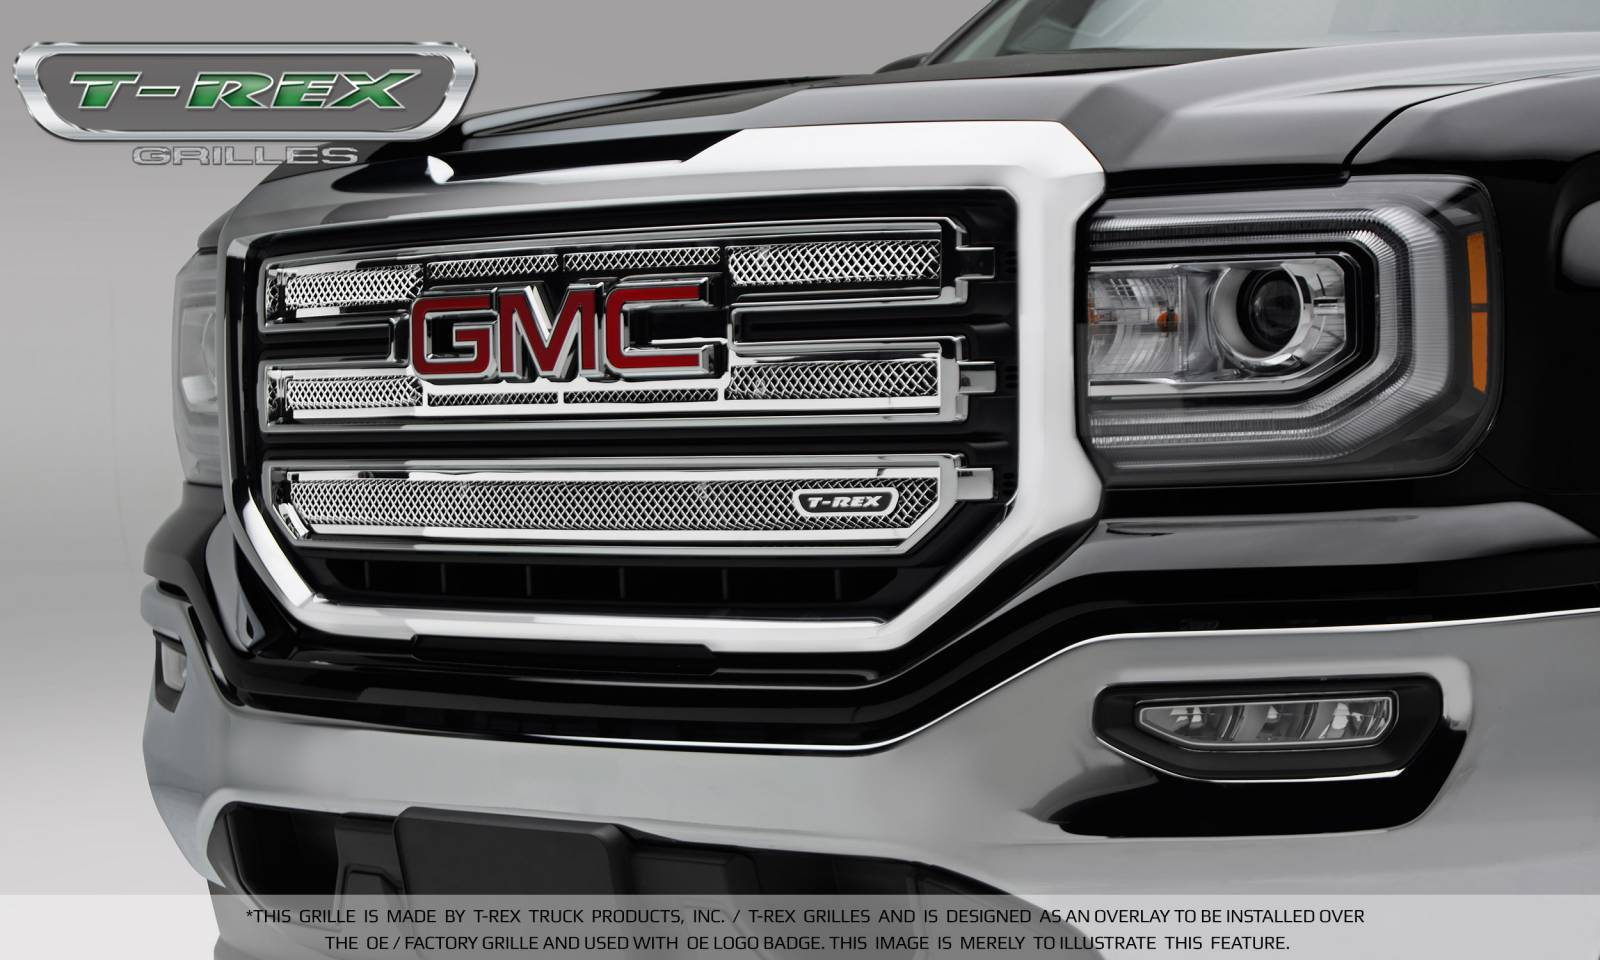 T-REX GMC Sierra 1500 - SLT - Upper Class Main Grille - 2 PC Overlay - Polished Stainless Steel - Pt # 54215